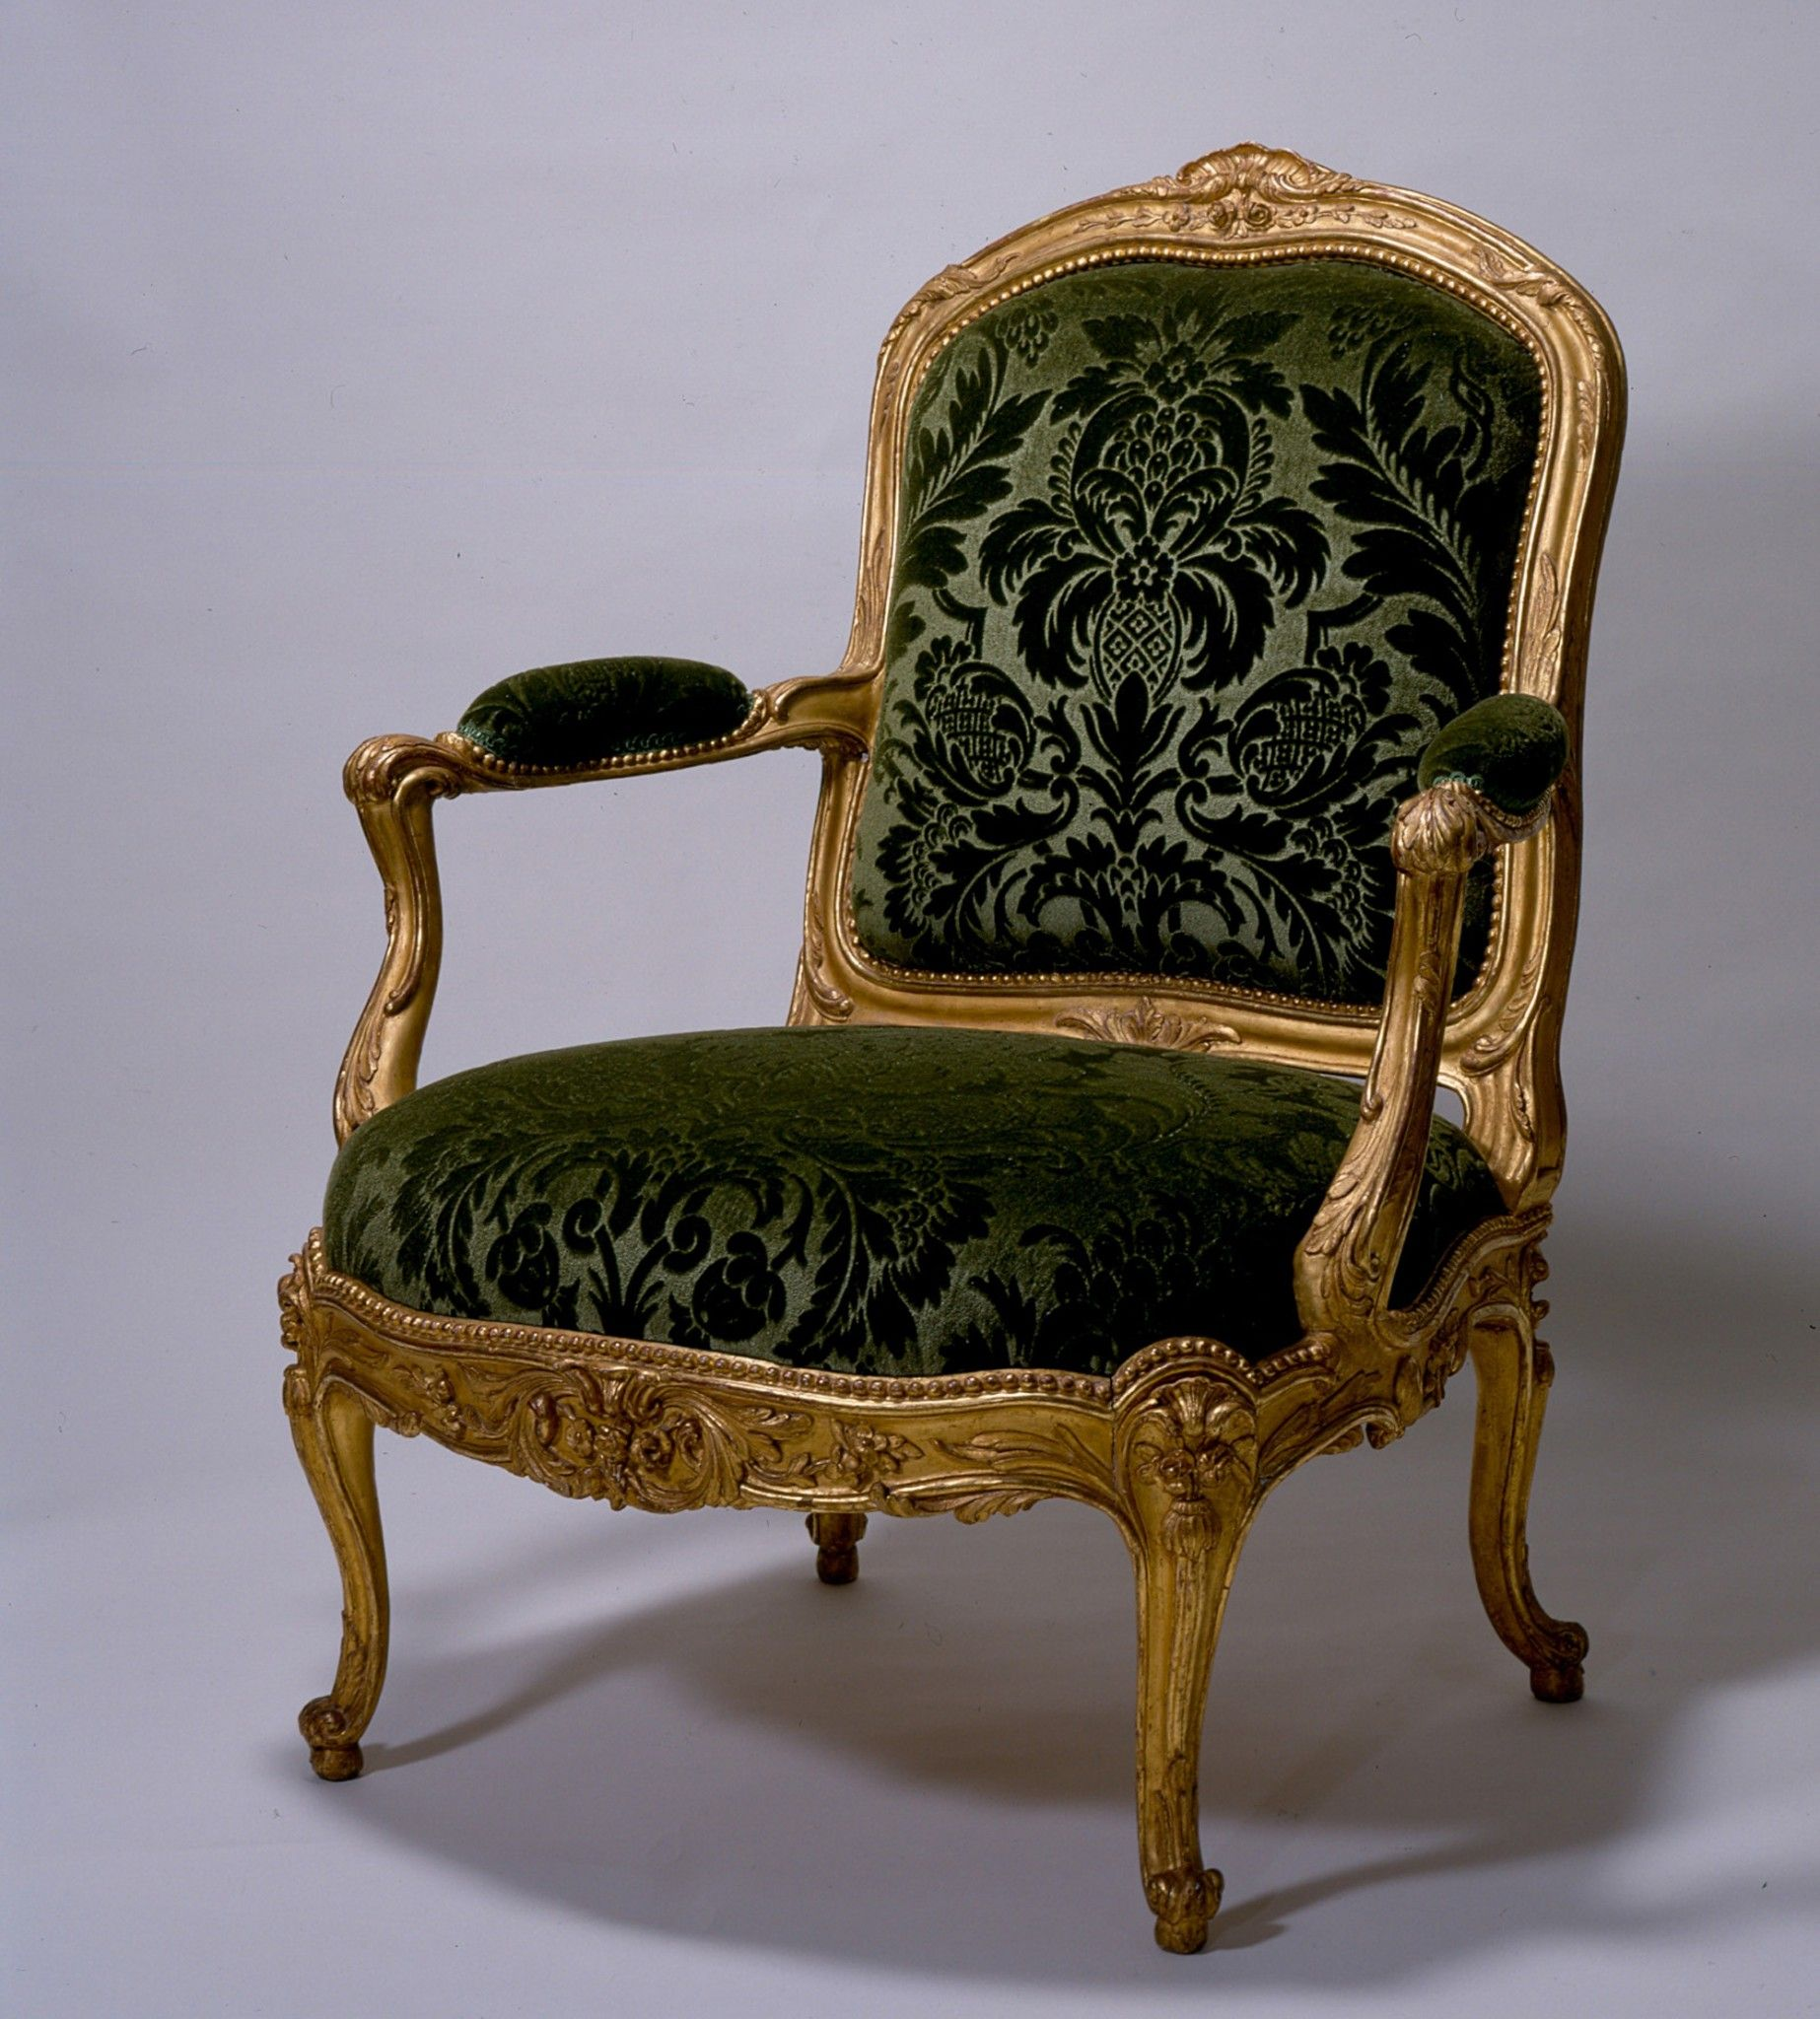 C1765 Louis Xv Armchair Attributed To Heurtaut Nicolas The Chair Is Part Of A Celebrated Suite Made For The Viennese Pa Armchair Georgian Furniture Furniture